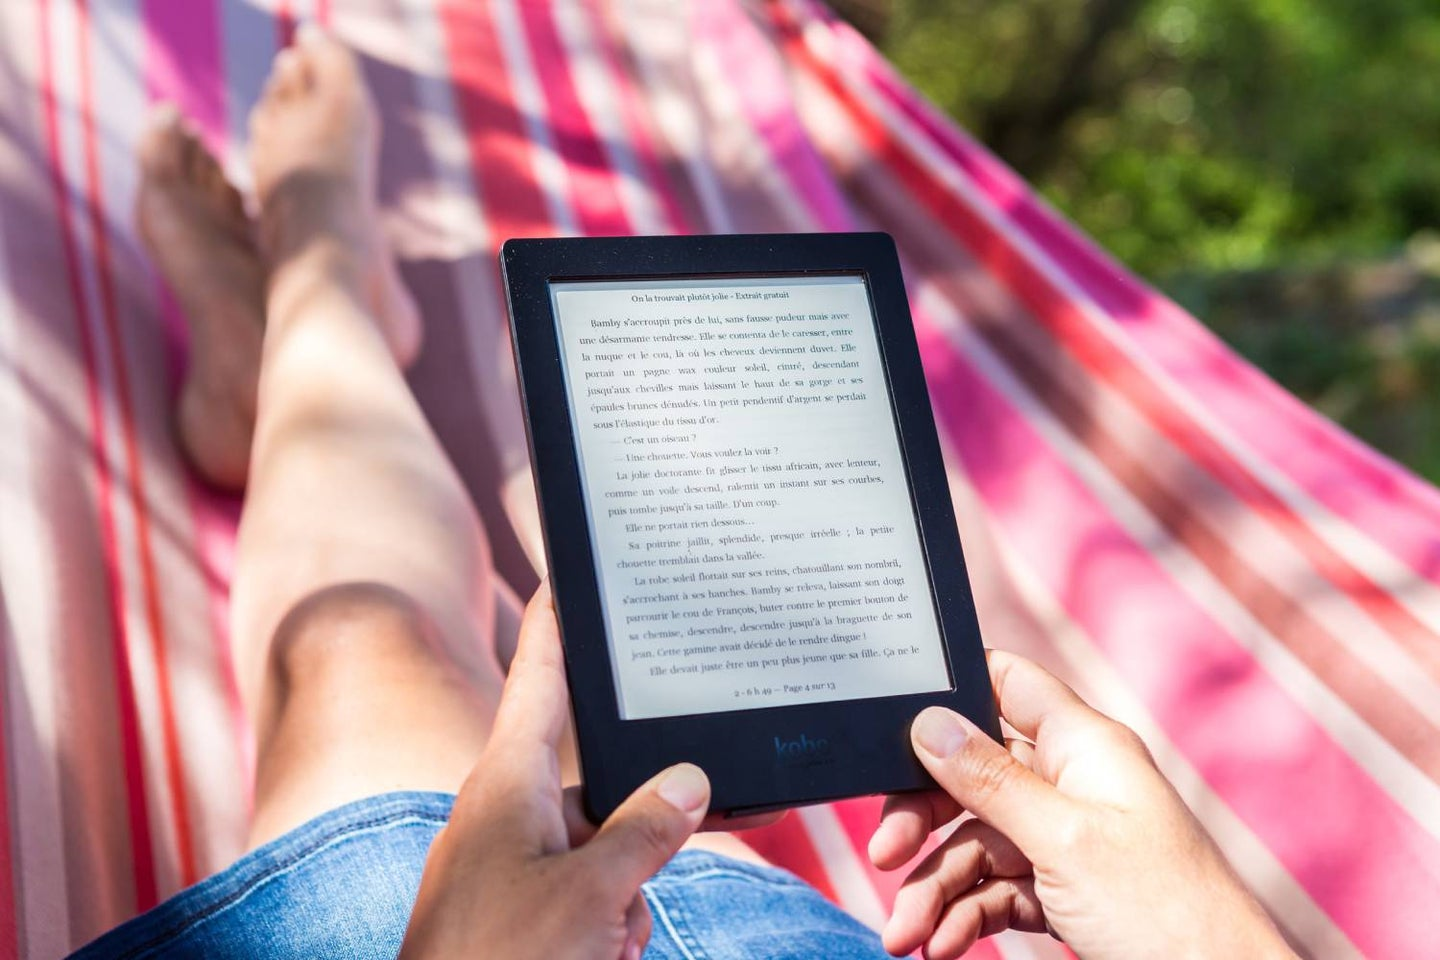 A person reading with an e-reader in a hammock outside.